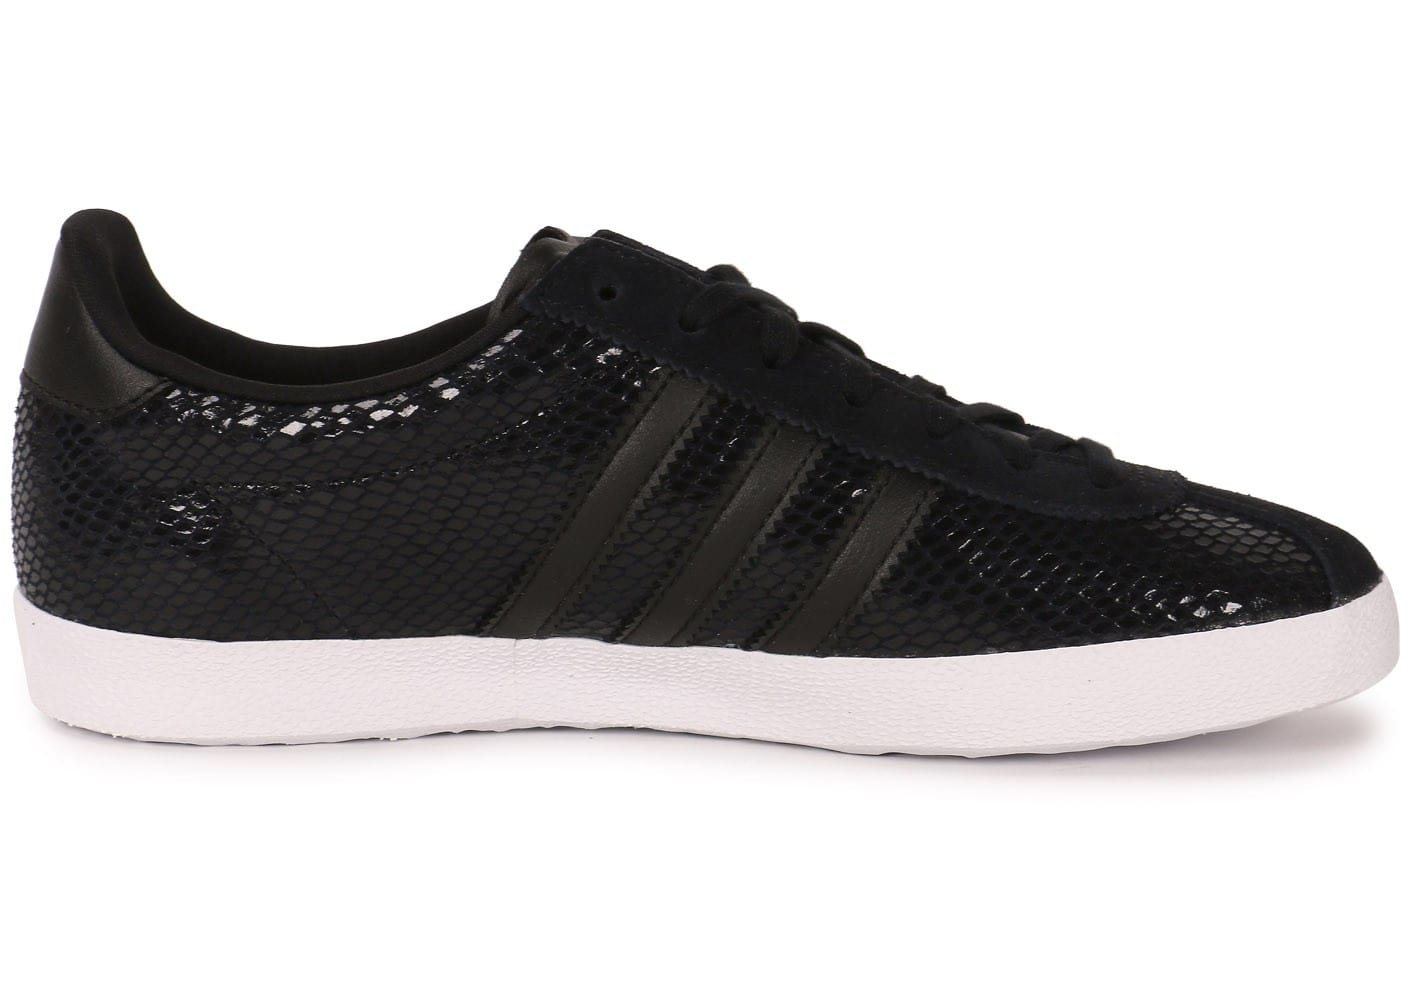 33babac2a5e adidas Gazelle OG Snake noire - Chaussures adidas - Chausport